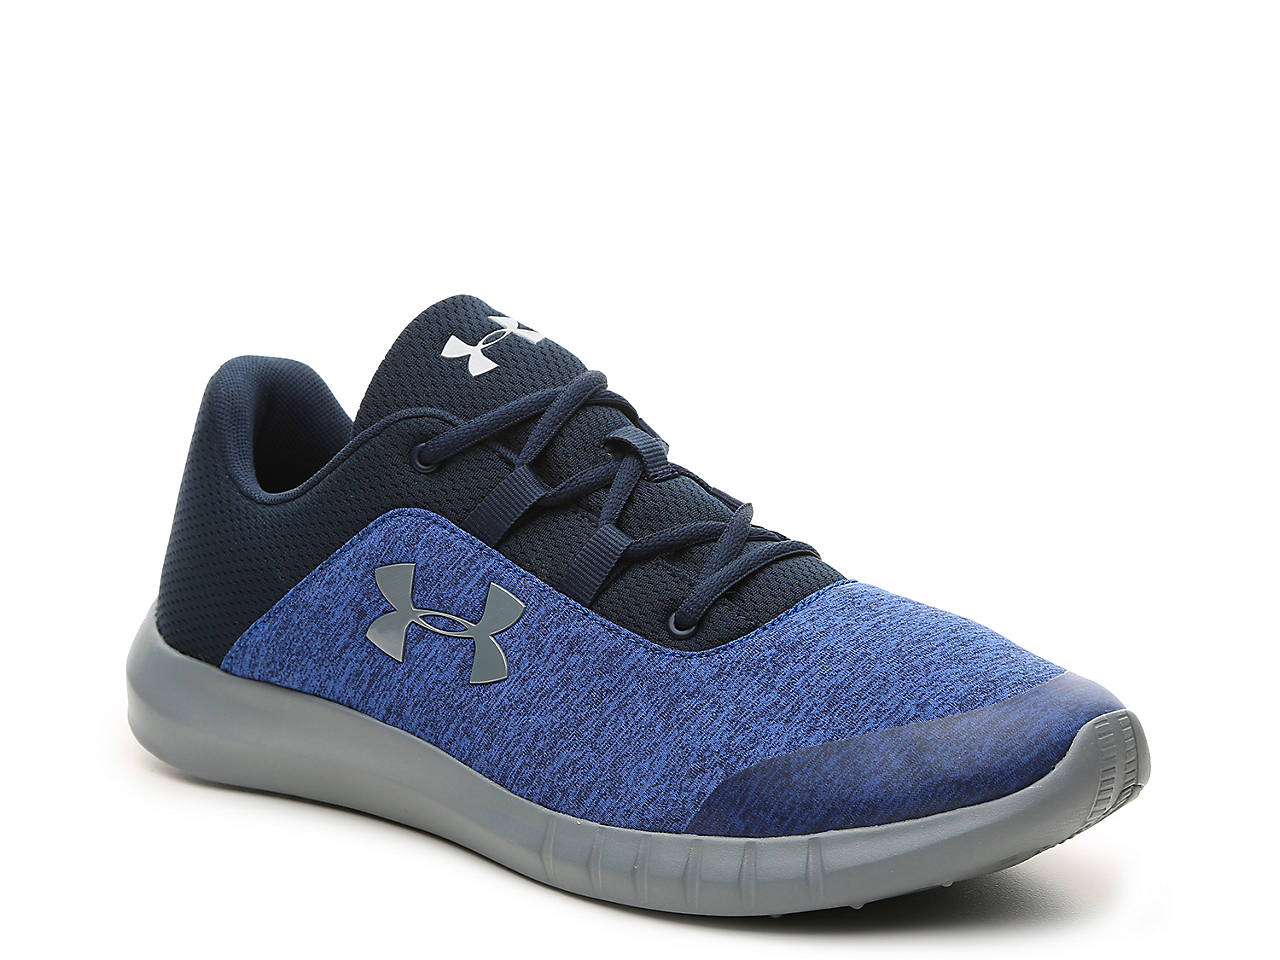 1640991a Under Armour Mojo Lightweight Running Shoe - Men's Men's Shoes | DSW